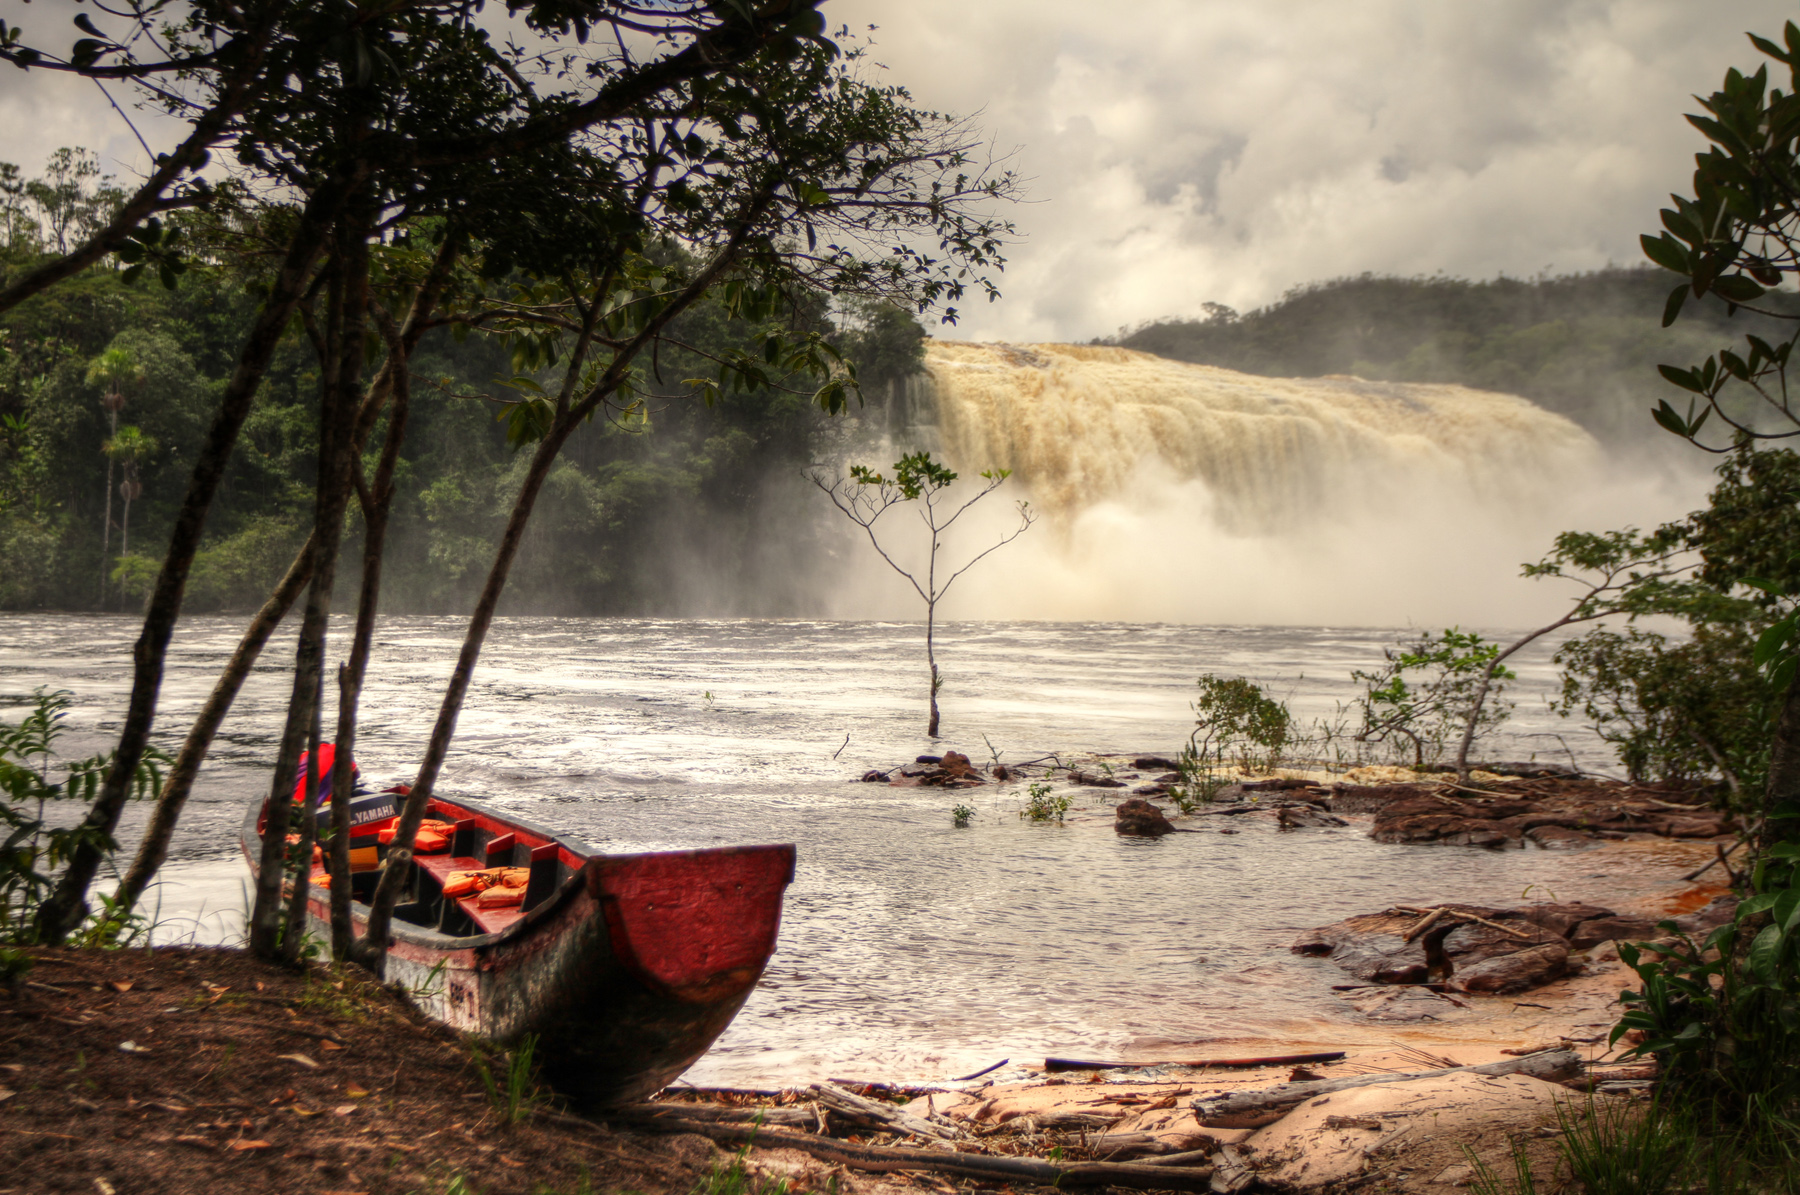 Canaima transportation